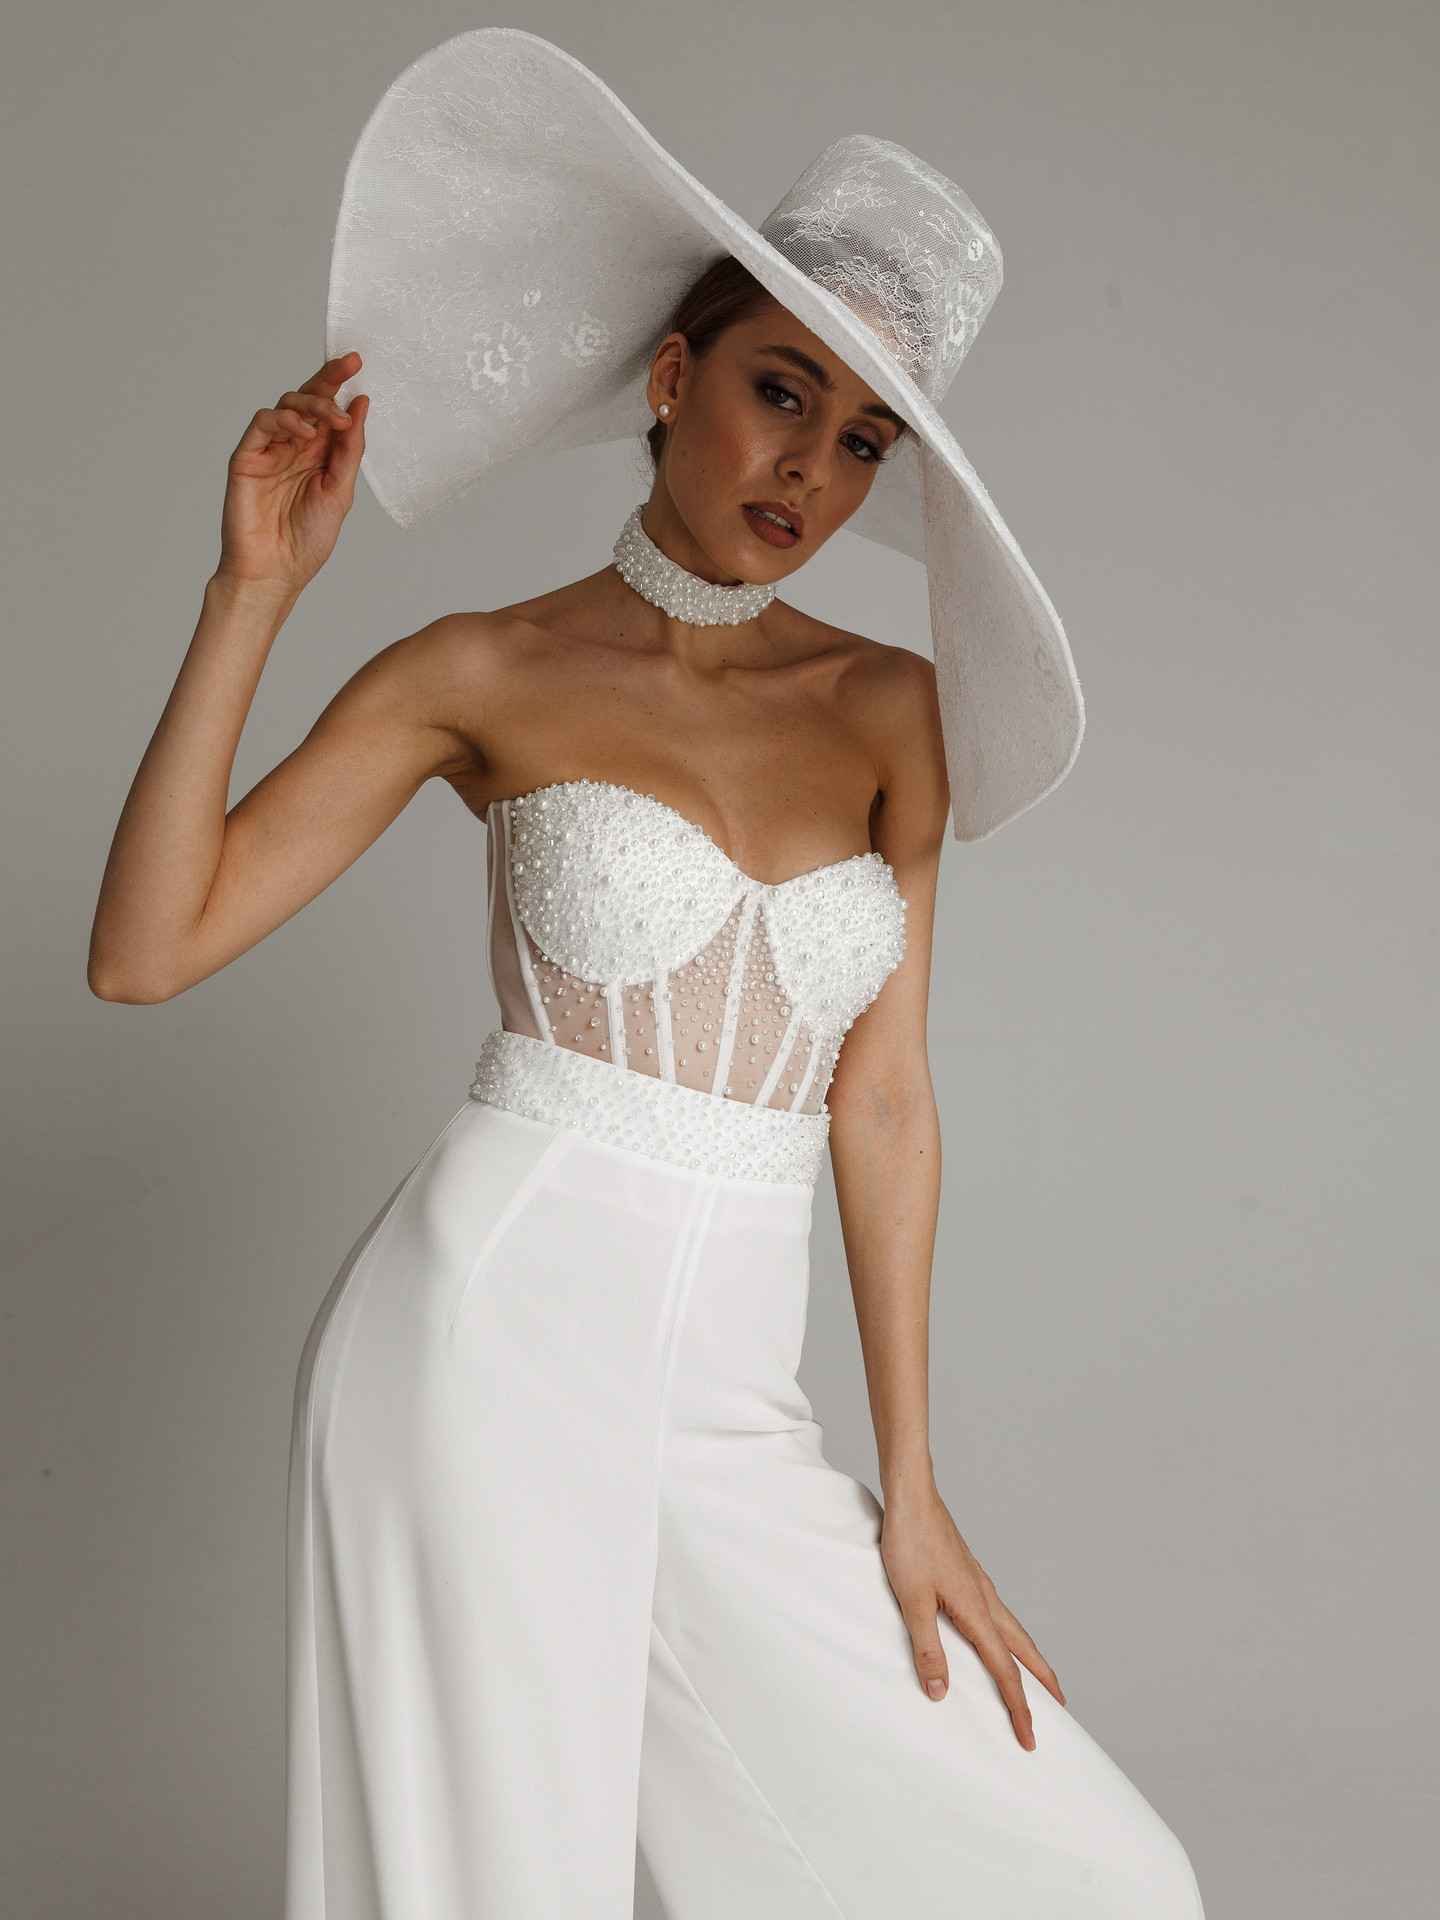 Wide-brimmed hat, accessories, headdress, bridal, off-white, beaded bridal suit, hat